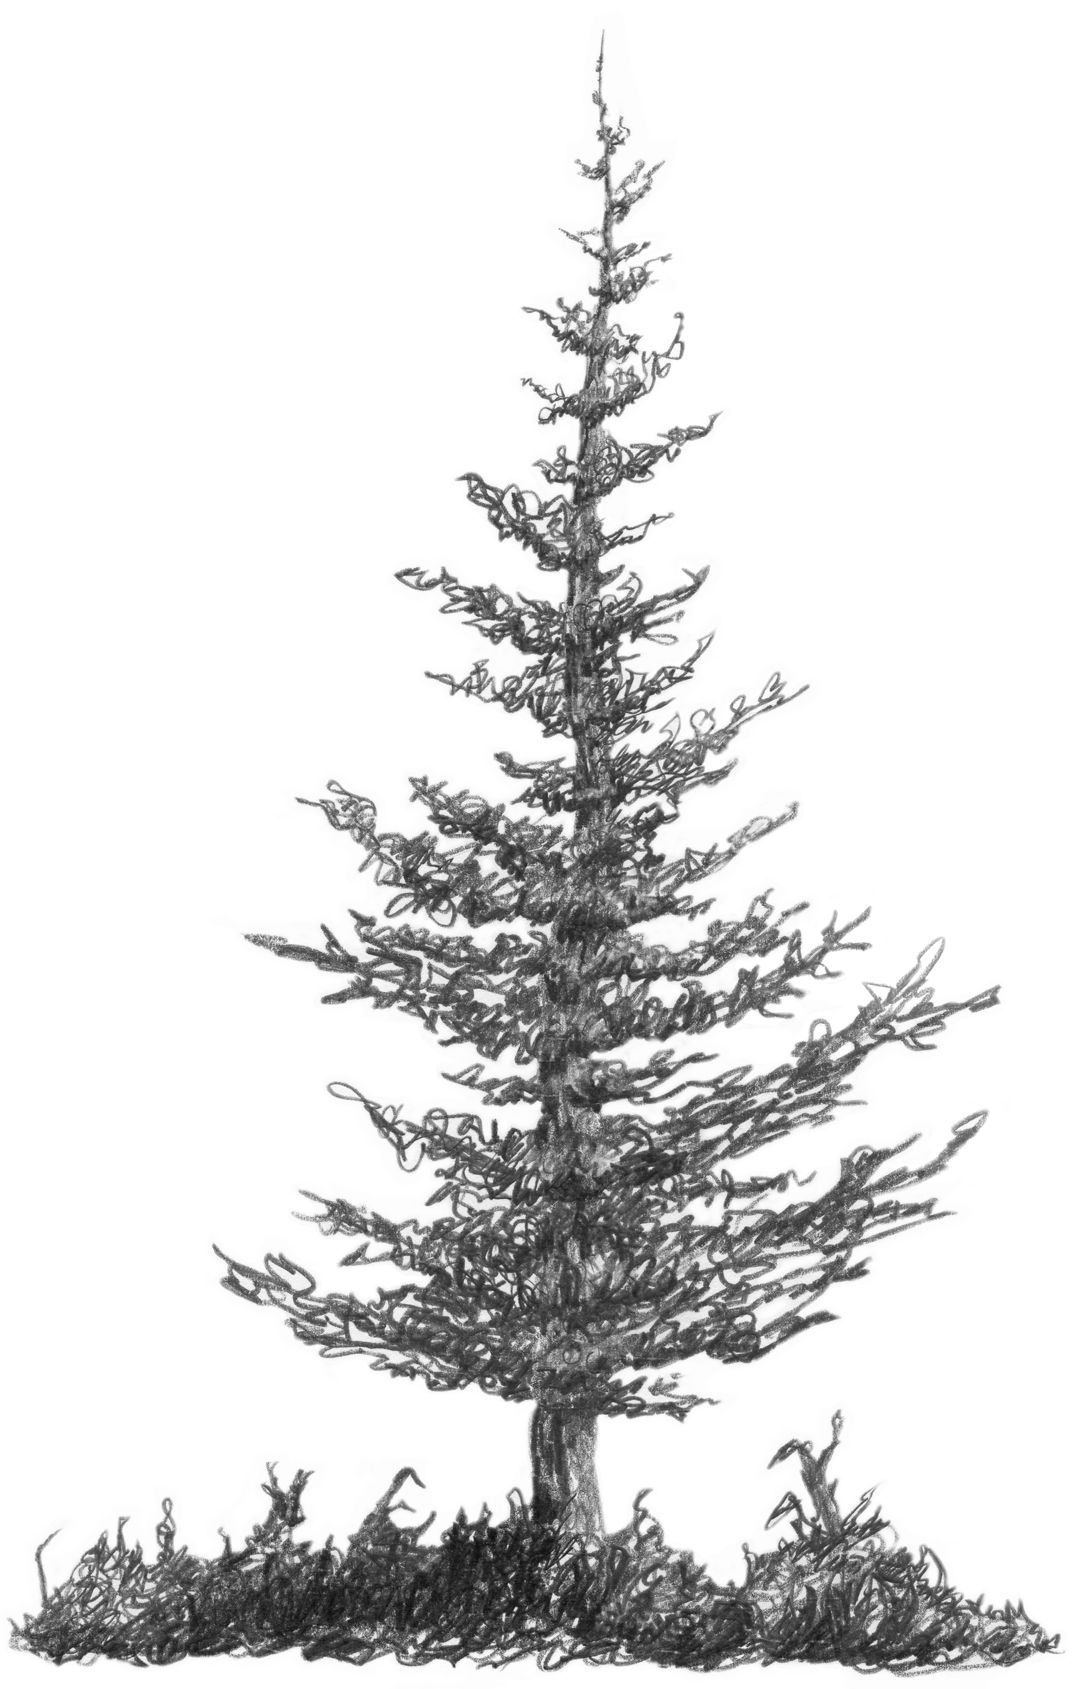 Figure 17 Pine tree drawing, Tree drawings pencil